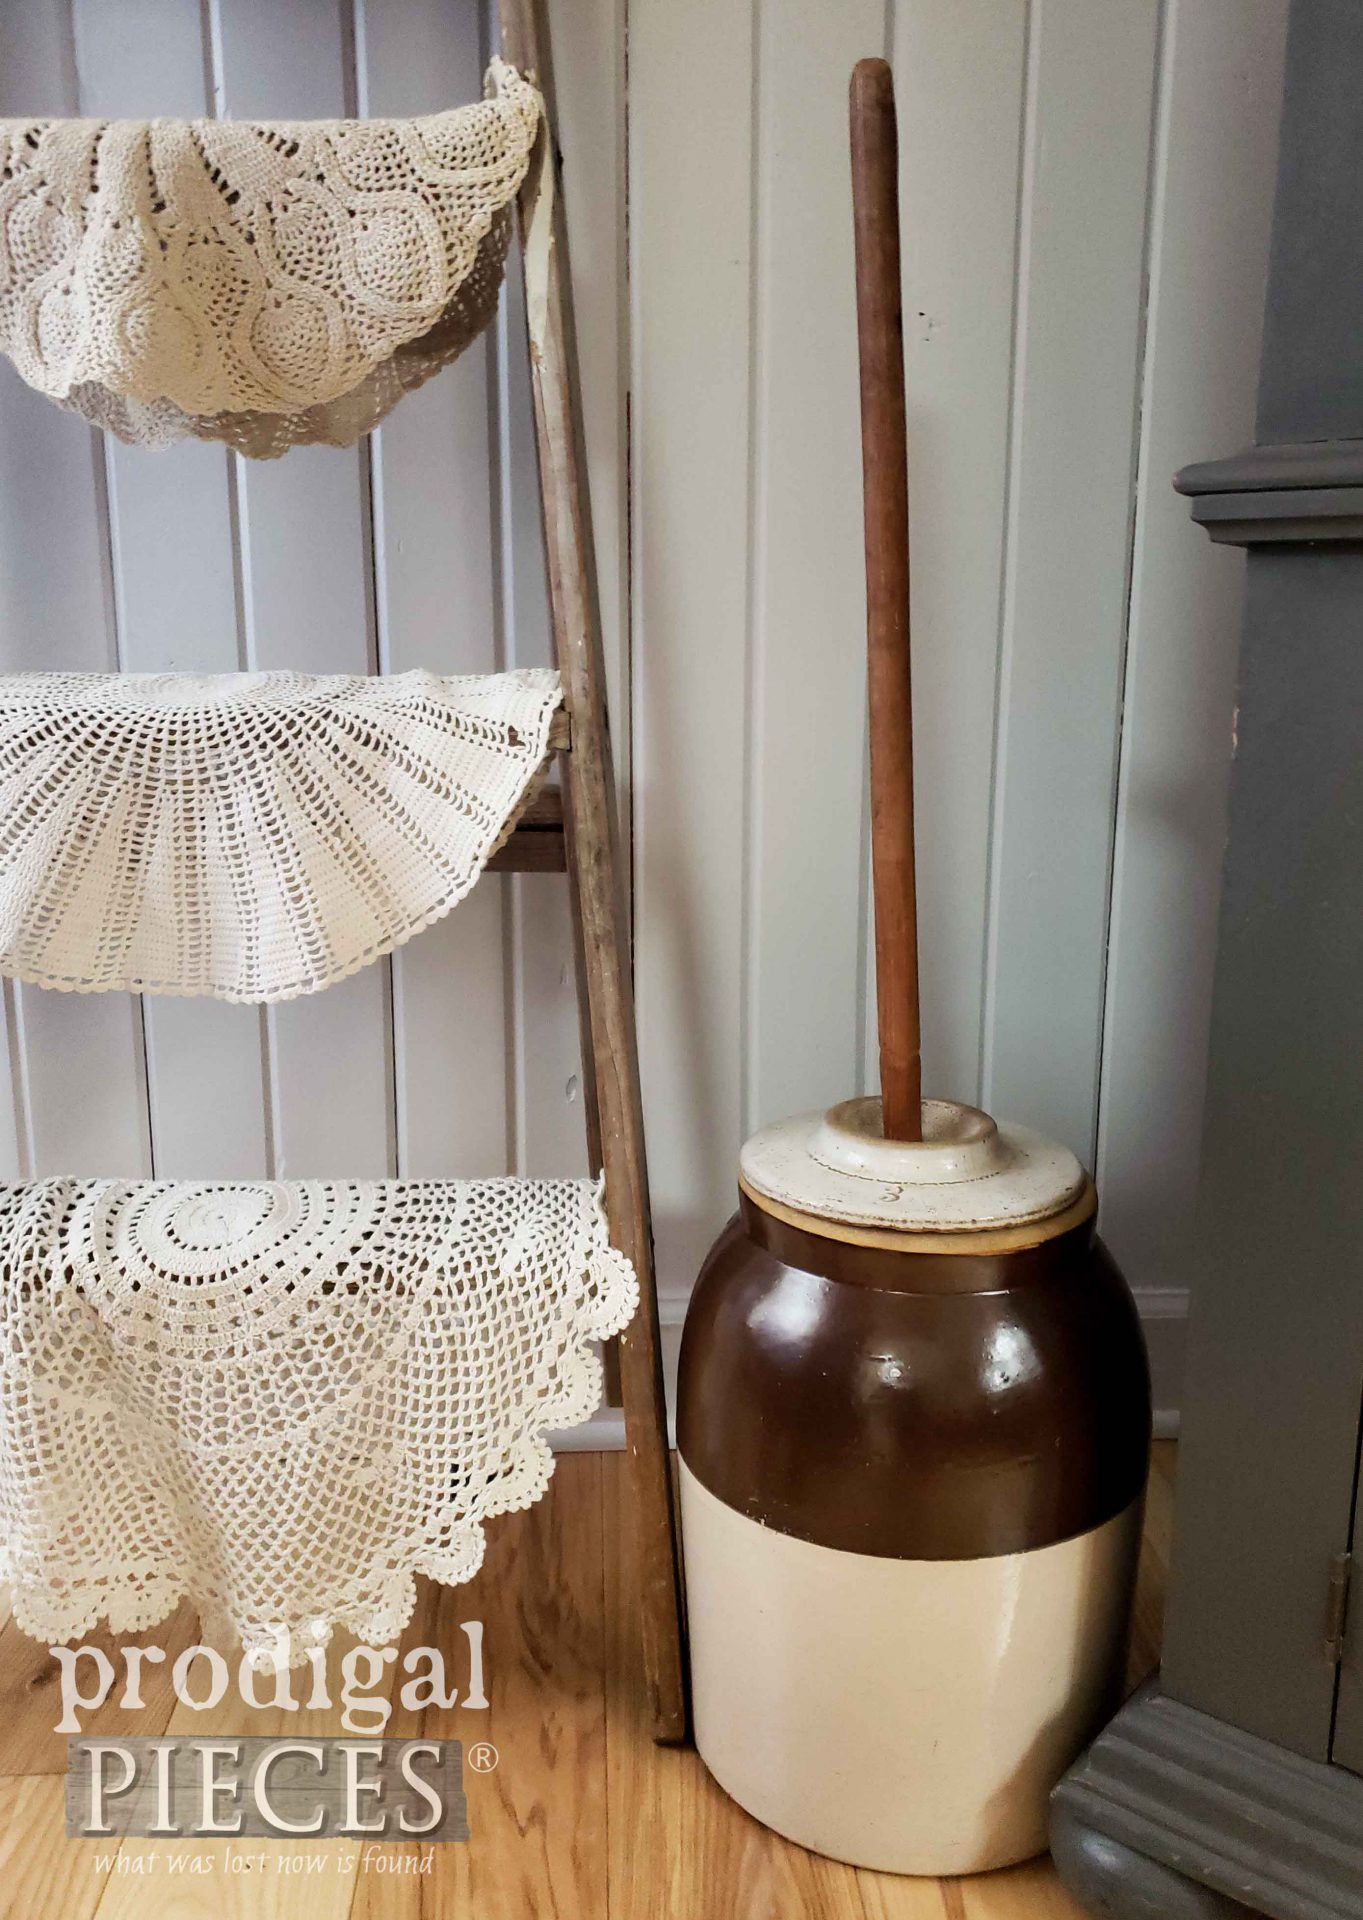 Heirloom Antique Butter Churn owned by Larissa of Prodigal Pieces | prodigalpieces.com #prodigalpieces #farmhouse #antique #home #homedecor